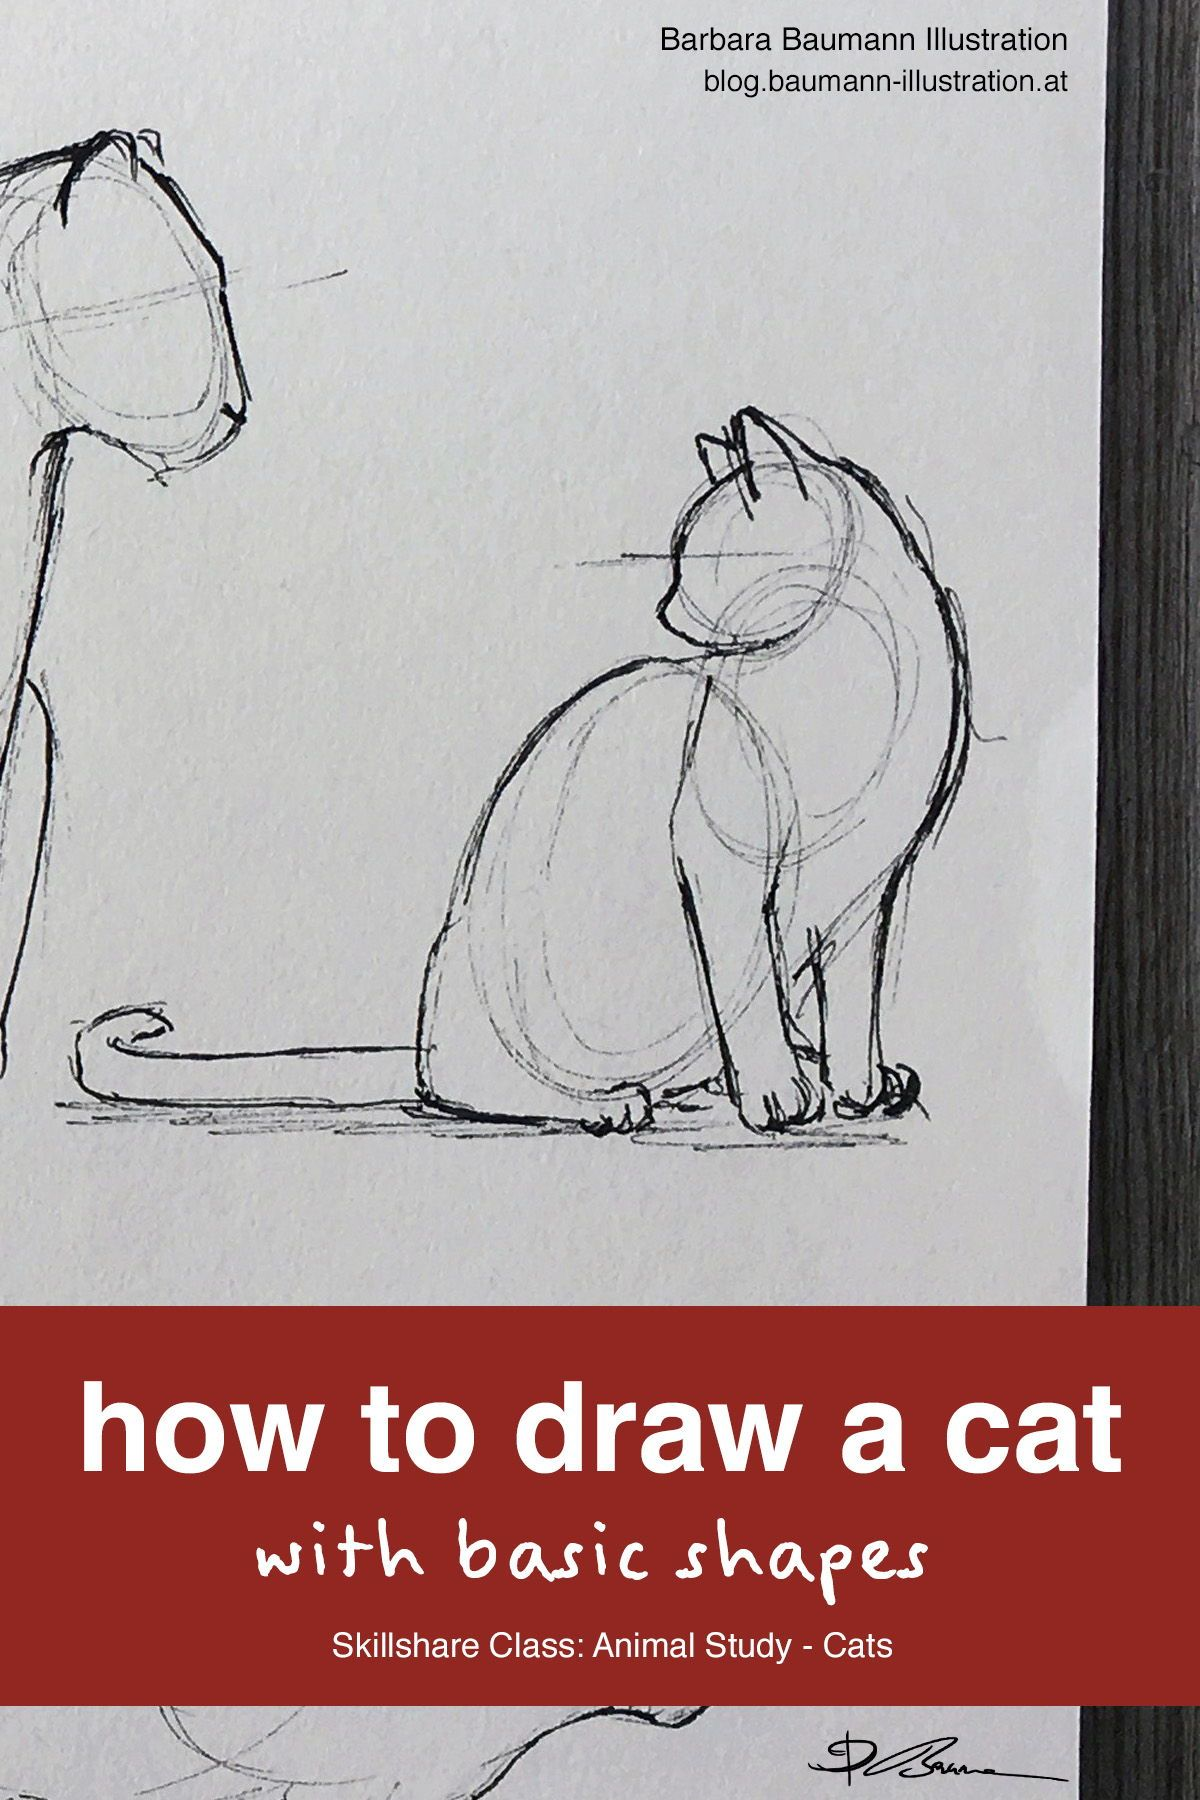 How To Draw A Cat With Basic Shapes Animal Sketch With Ink Cat Drawing Tutorial Animal Study Basic Sketching